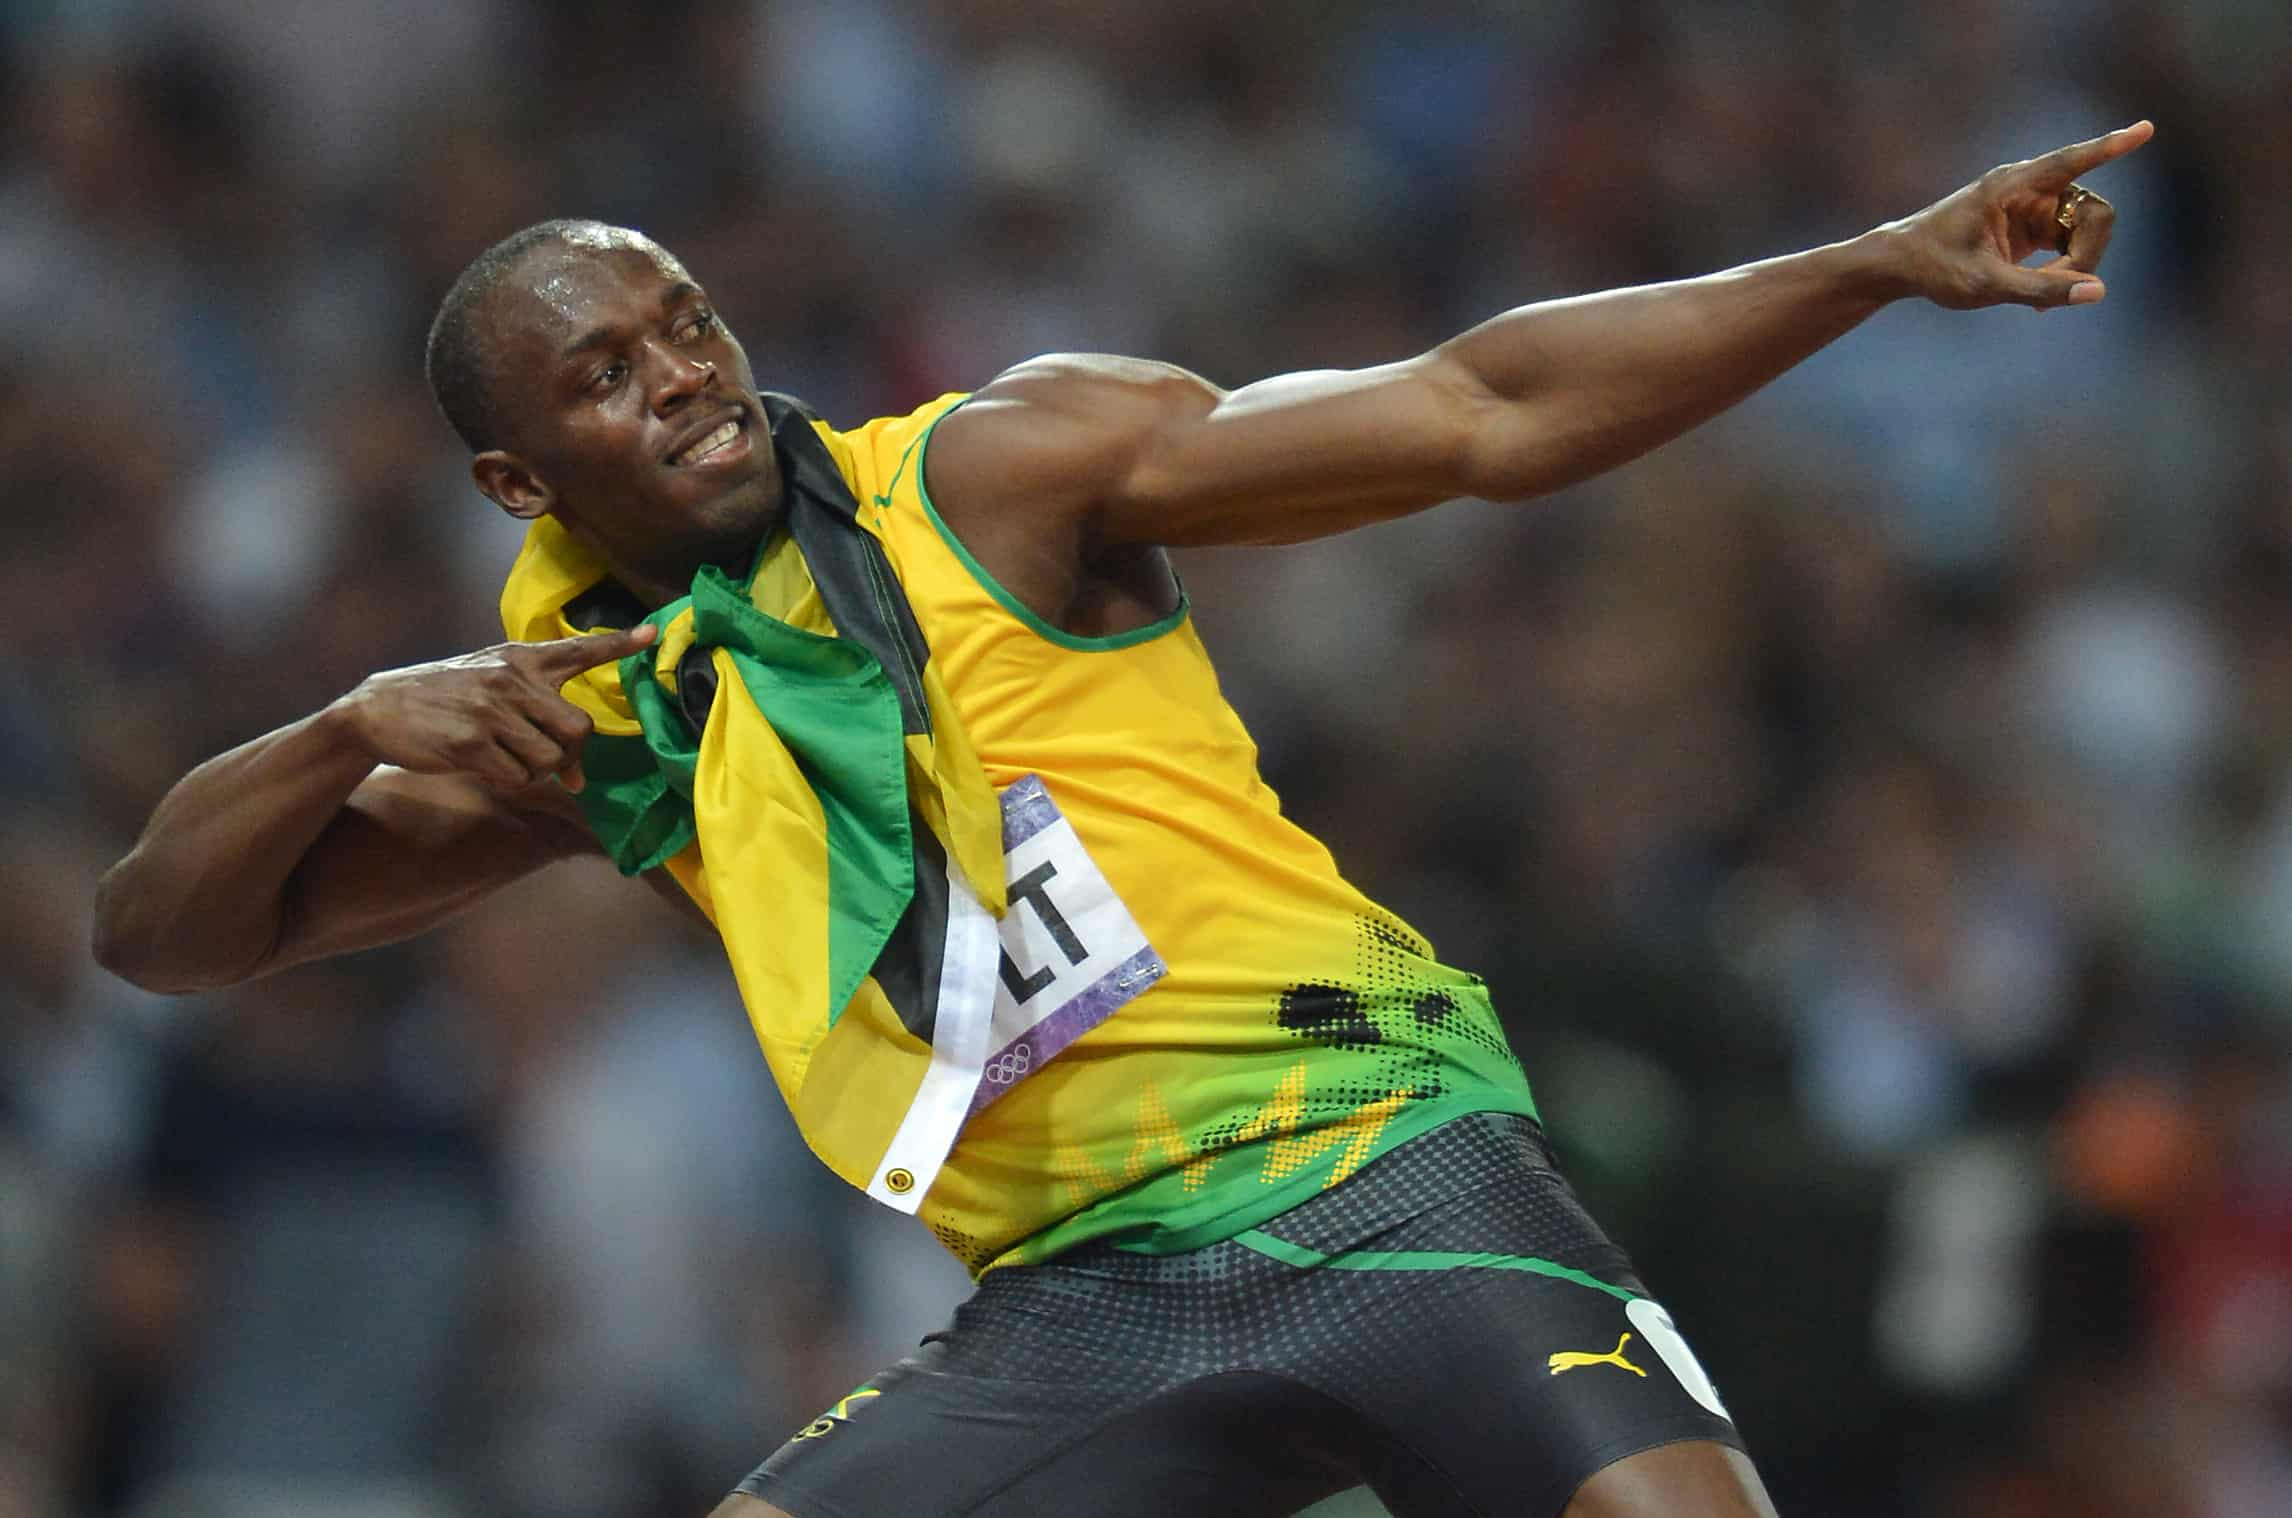 Superstar Sprinter Usain Bolt Partied In Costa Ricas Capital Last Night The Six Time Olympic Gold Medalist Joined Jamaican Reggae Singer Chris Martin For